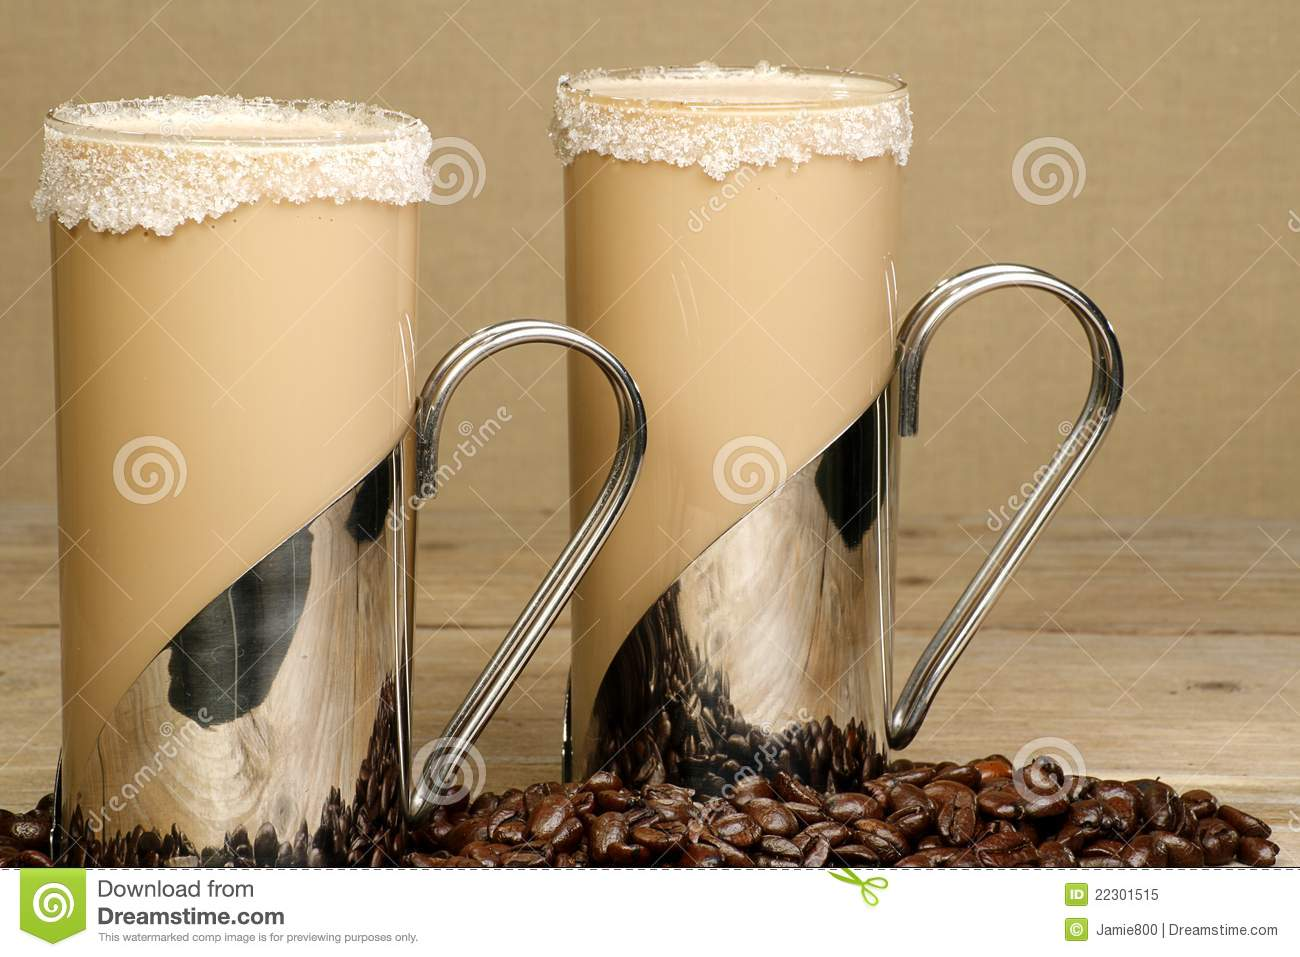 Two mugs of iced coffee frappe with coffee beans on a wooden table.